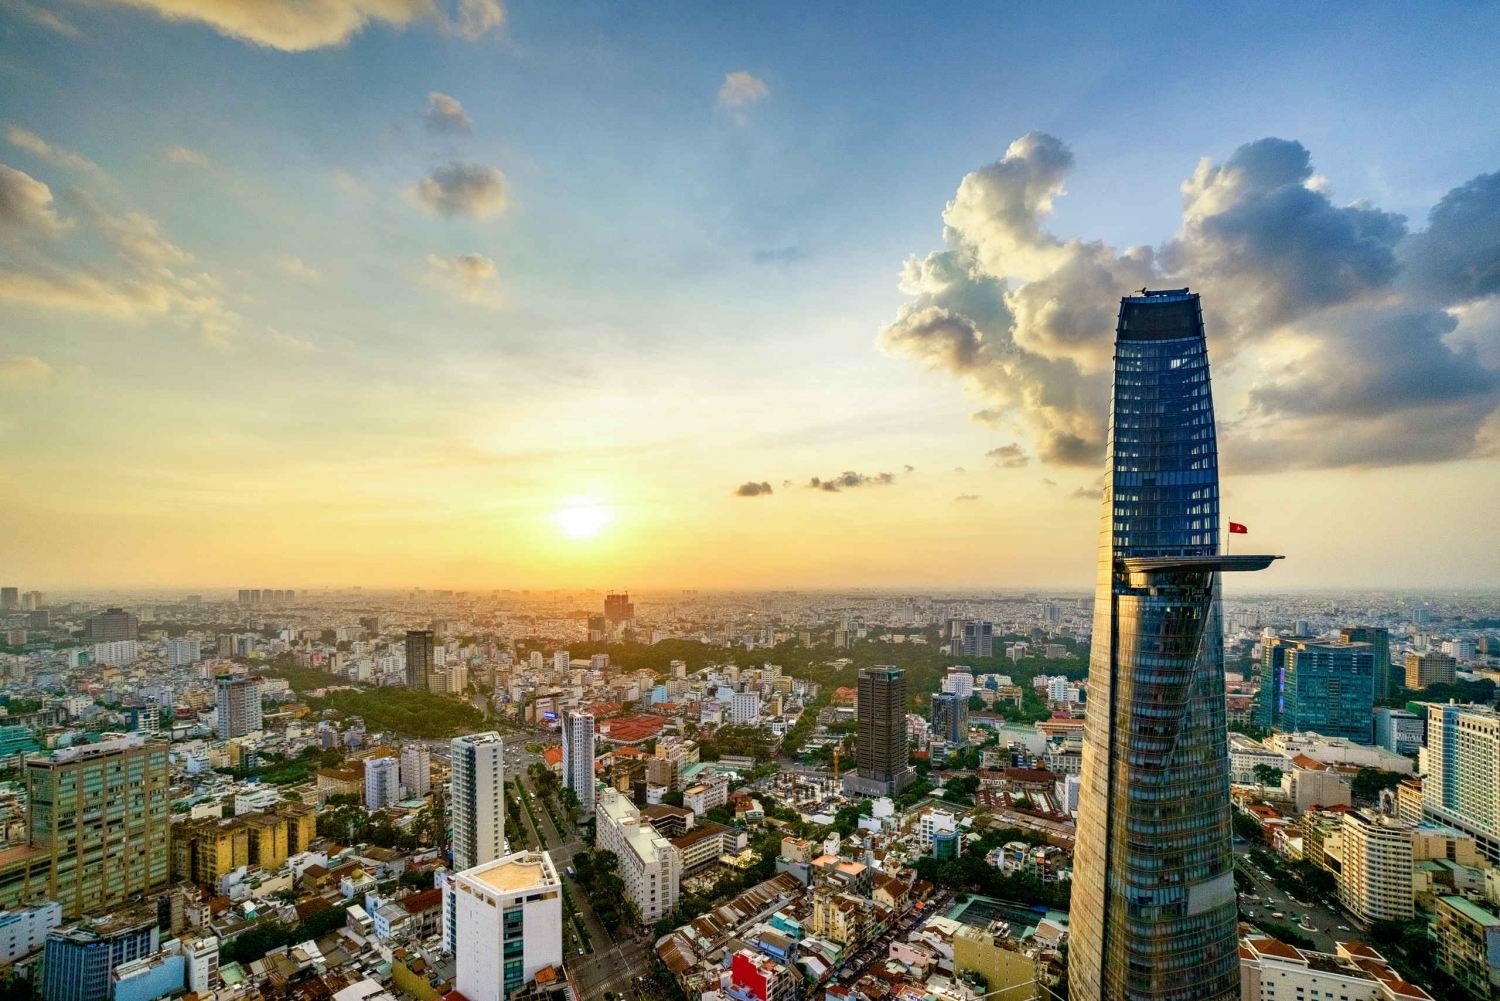 Bitexco Financial Tower: Saigon Sky Deck - Fast Track Ticket